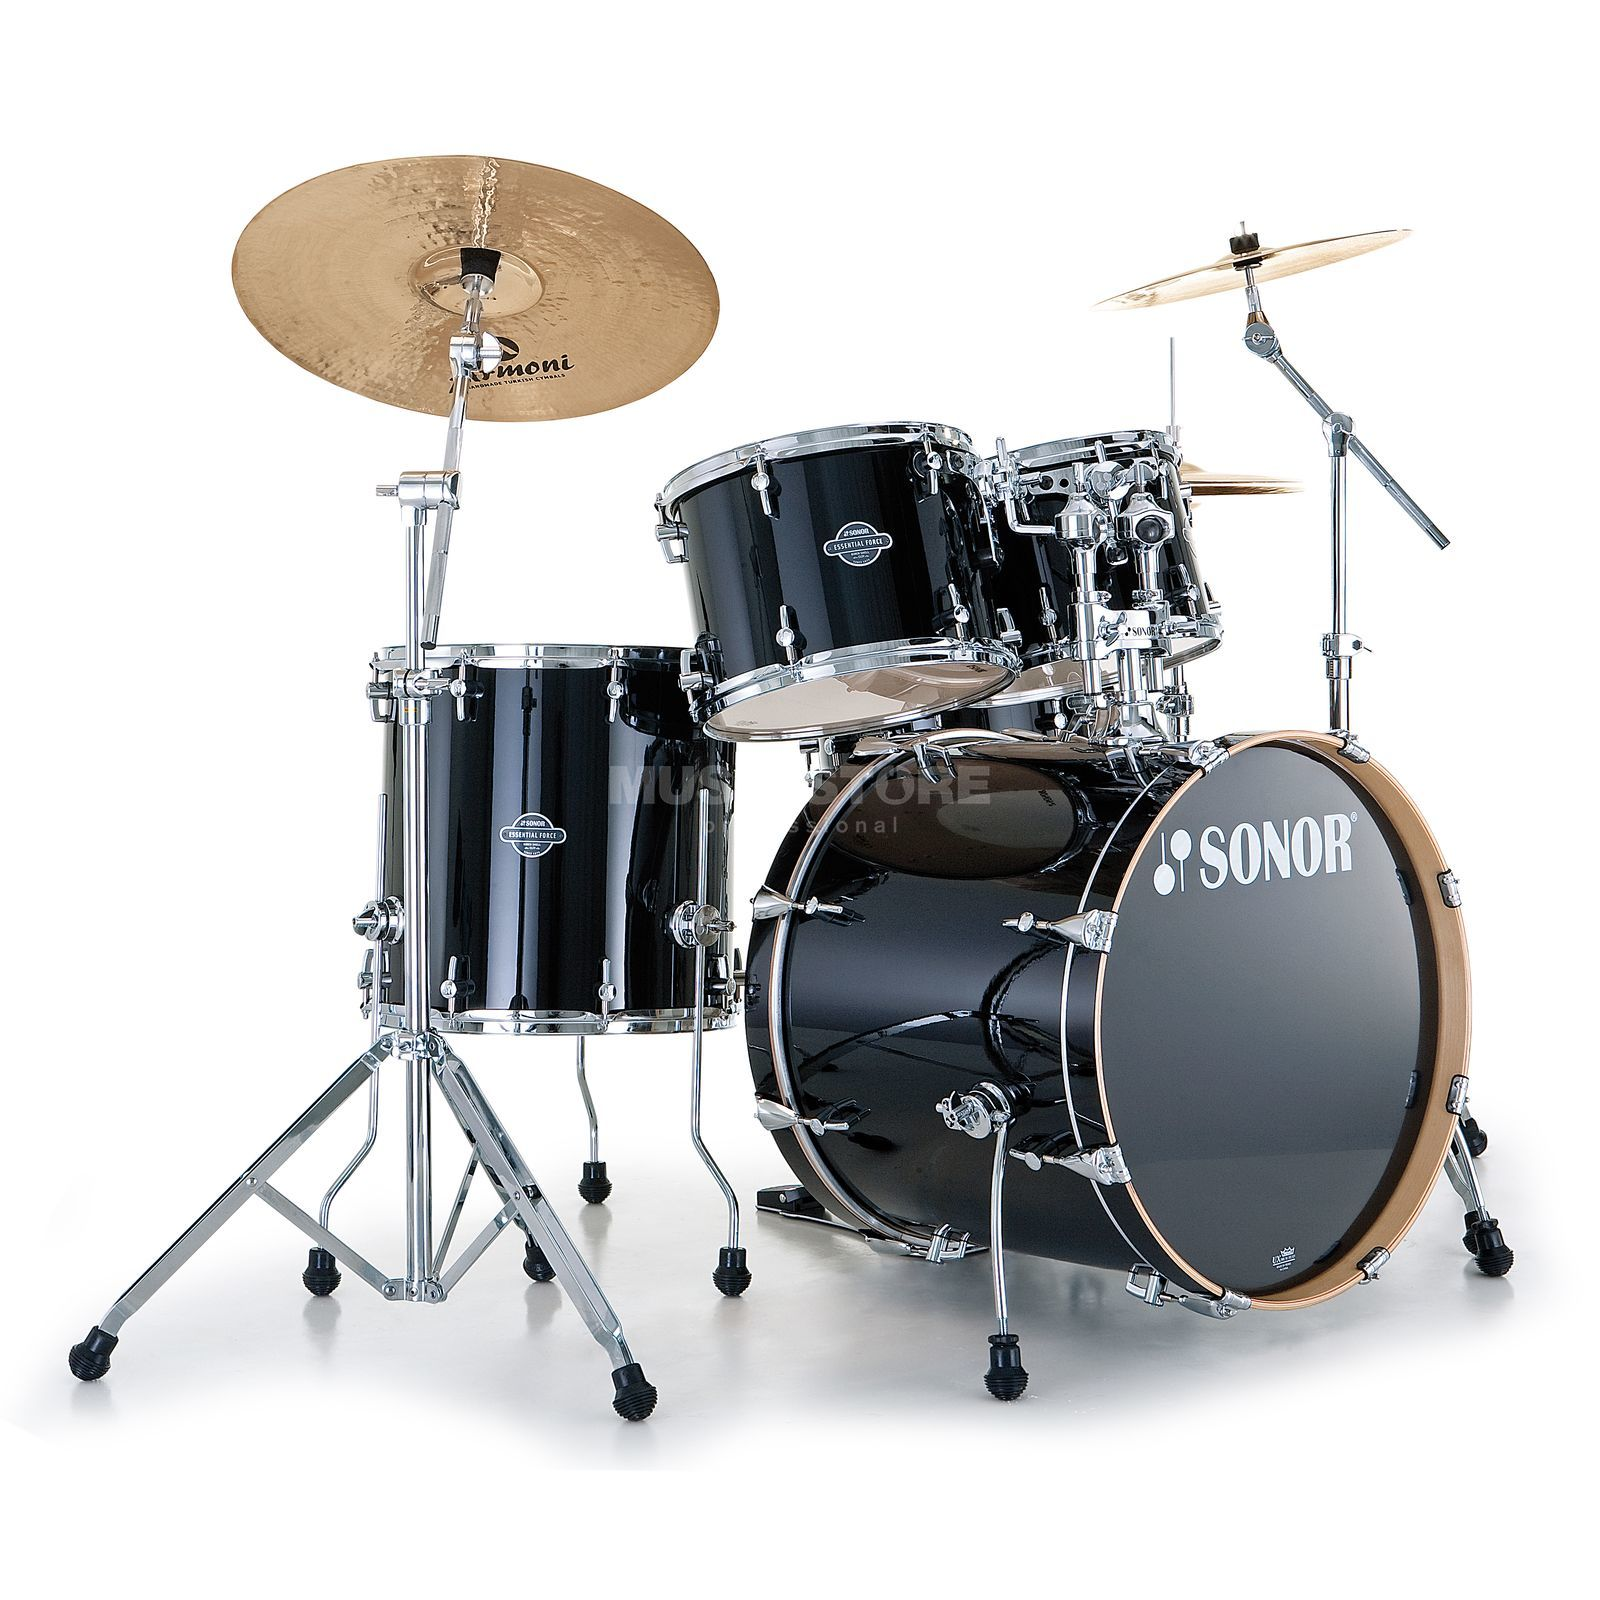 Sonor Essential Force Studio, Piano Black #41 Zdjęcie produktu